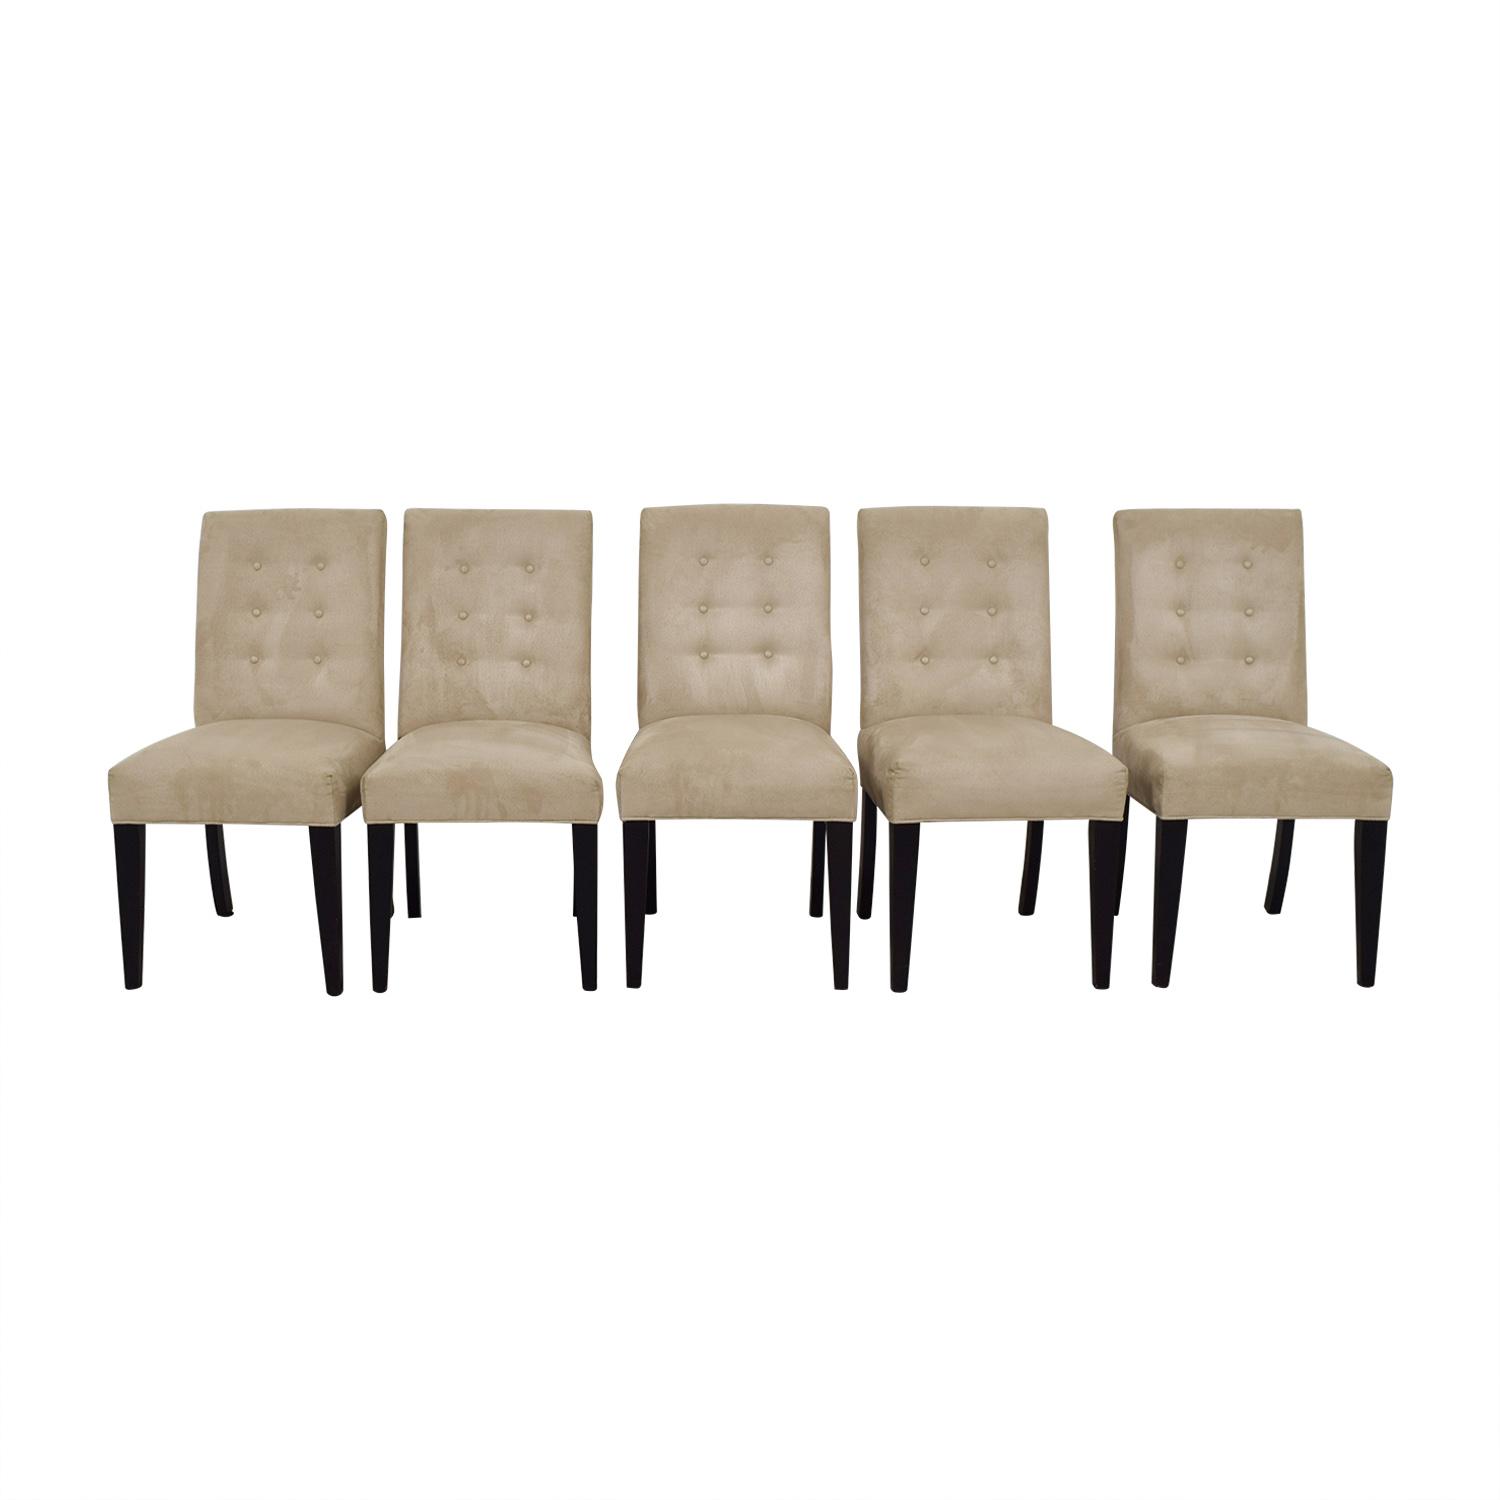 shop Mitchell Gold + Bob Williams Mitchell Gold + Bob Williams Grey Tufted Chairs online